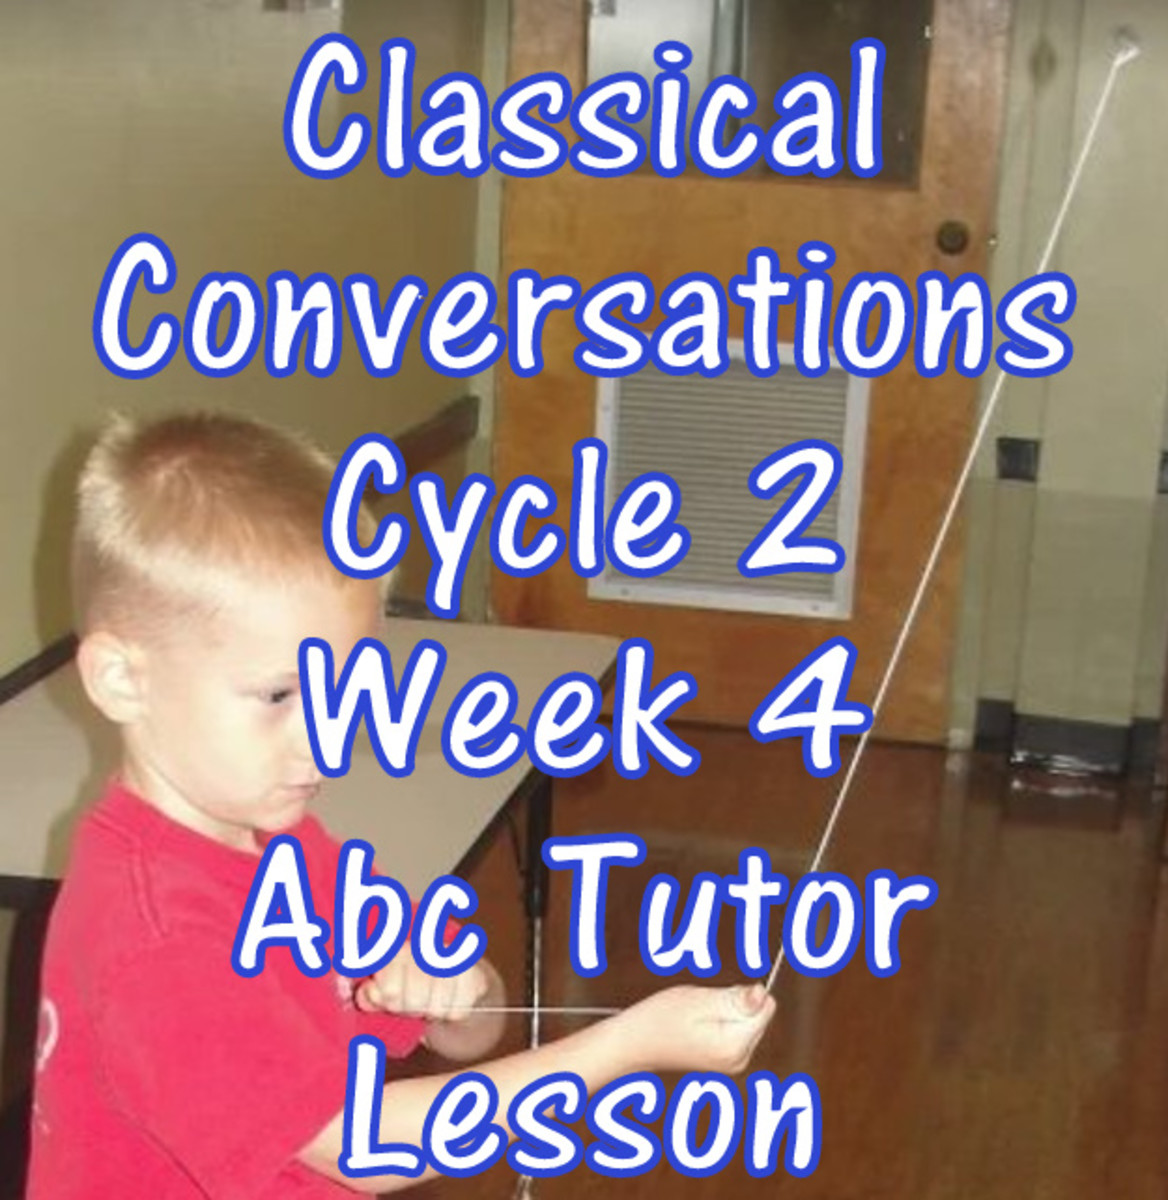 Classical Conversations Cycle 2 Week 4 Abc Tutor Lesson Plan